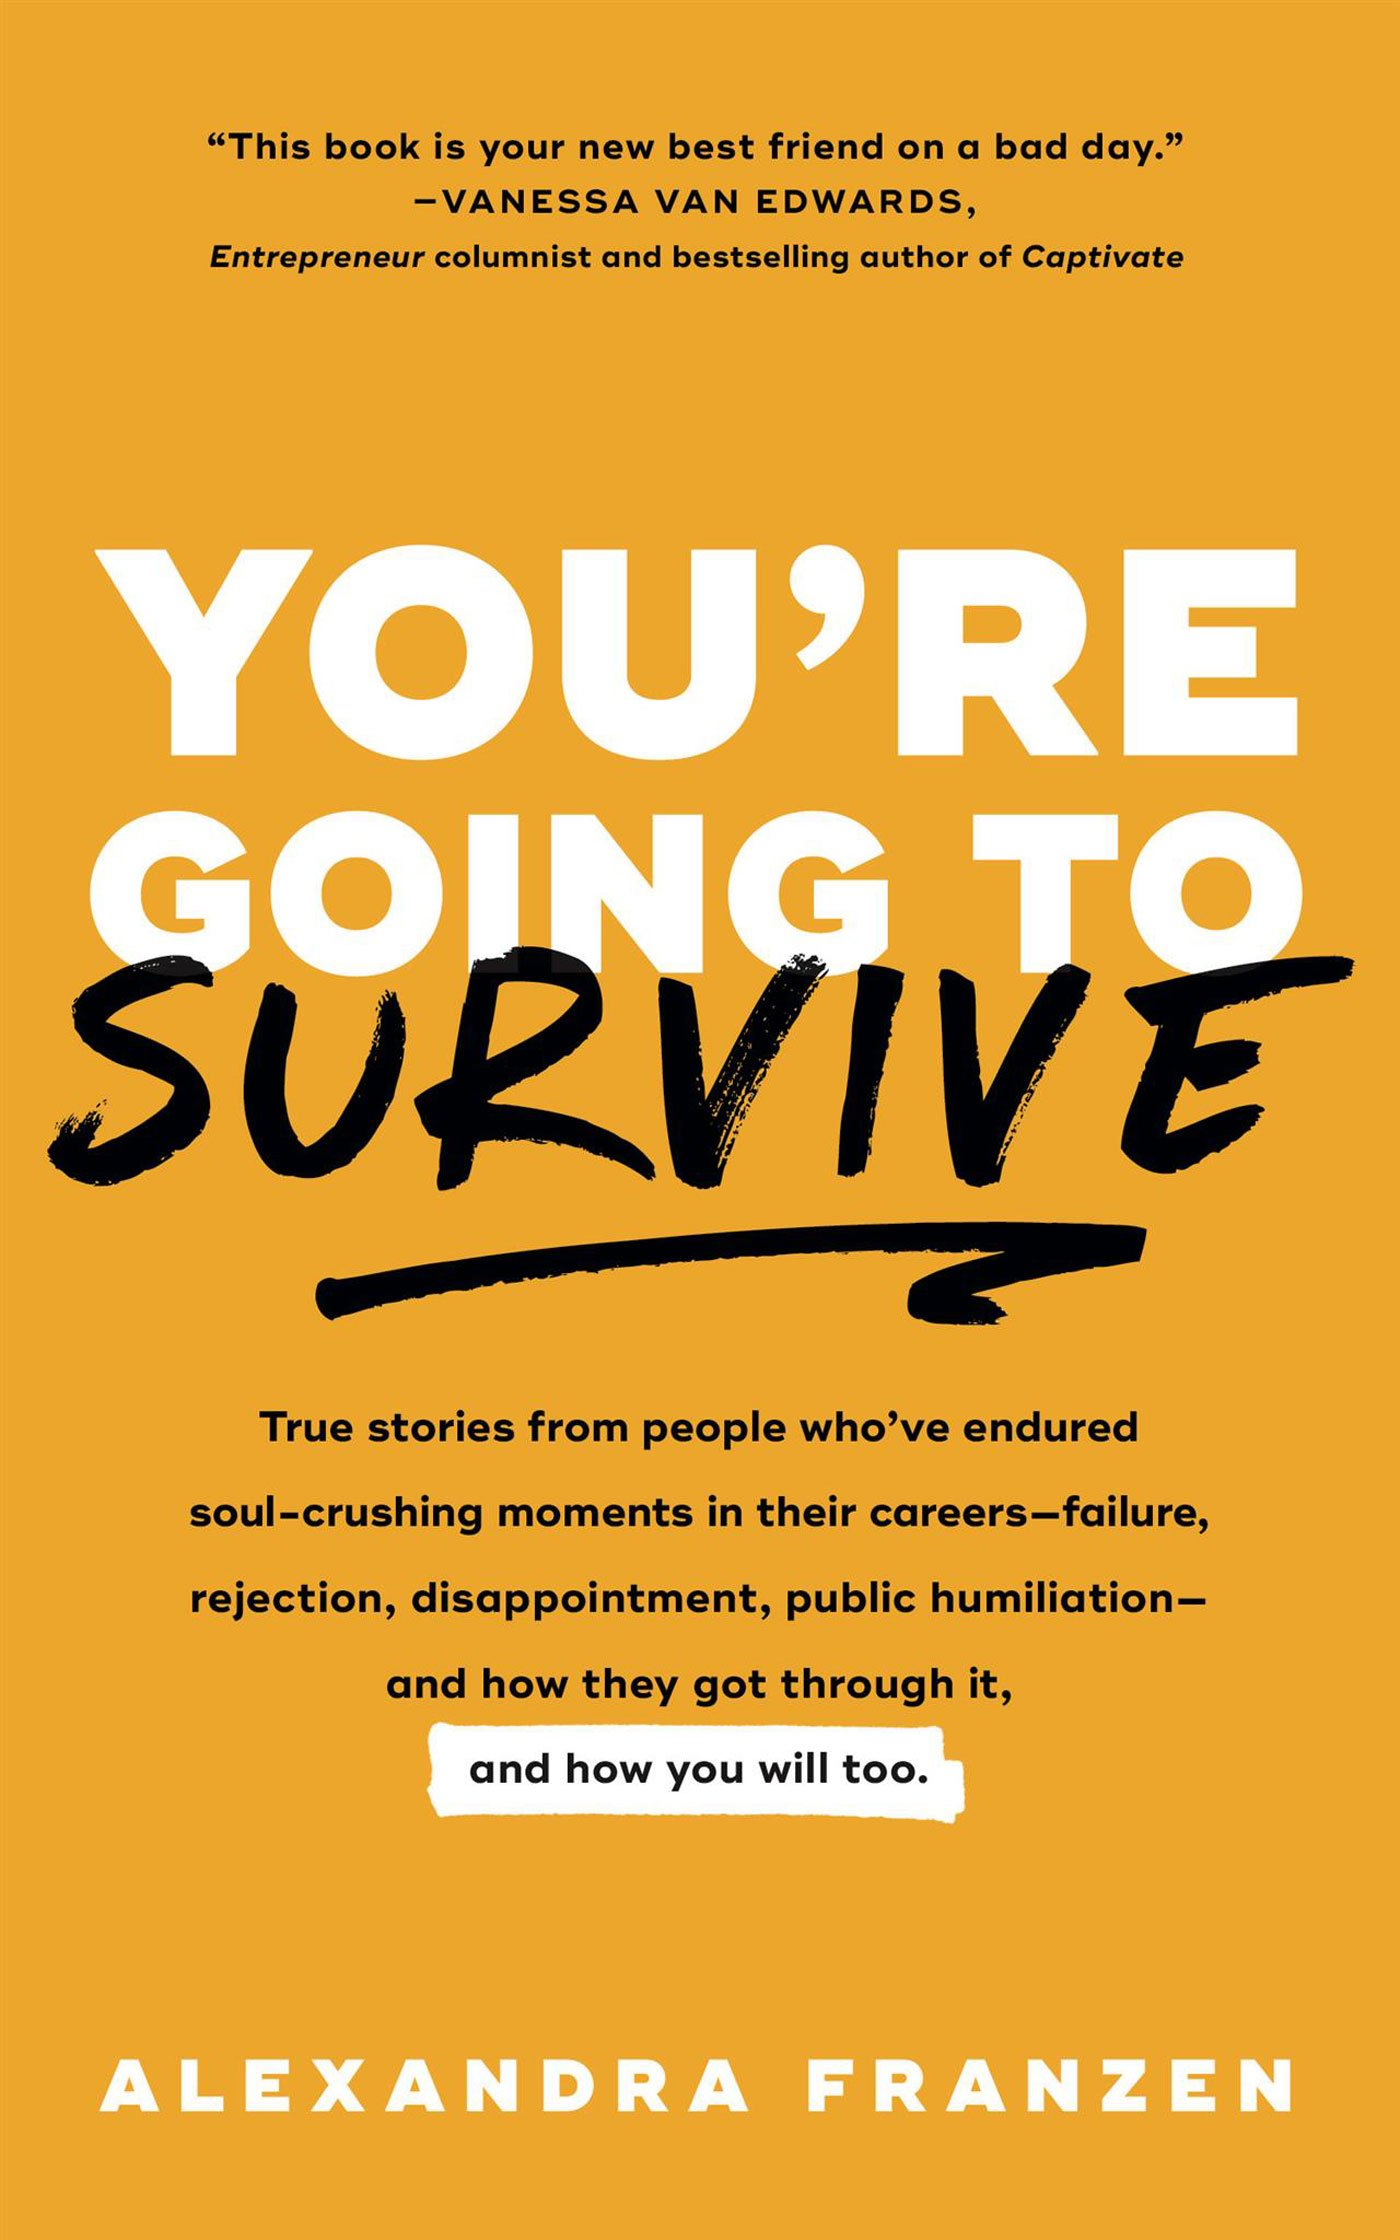 Download You're Going to Survive: True stories about adversity, rejection, defeat, terrible bosses, online trolls, 1-star Yelp reviews, and other soul-crushing experiences―and how to get through it pdf